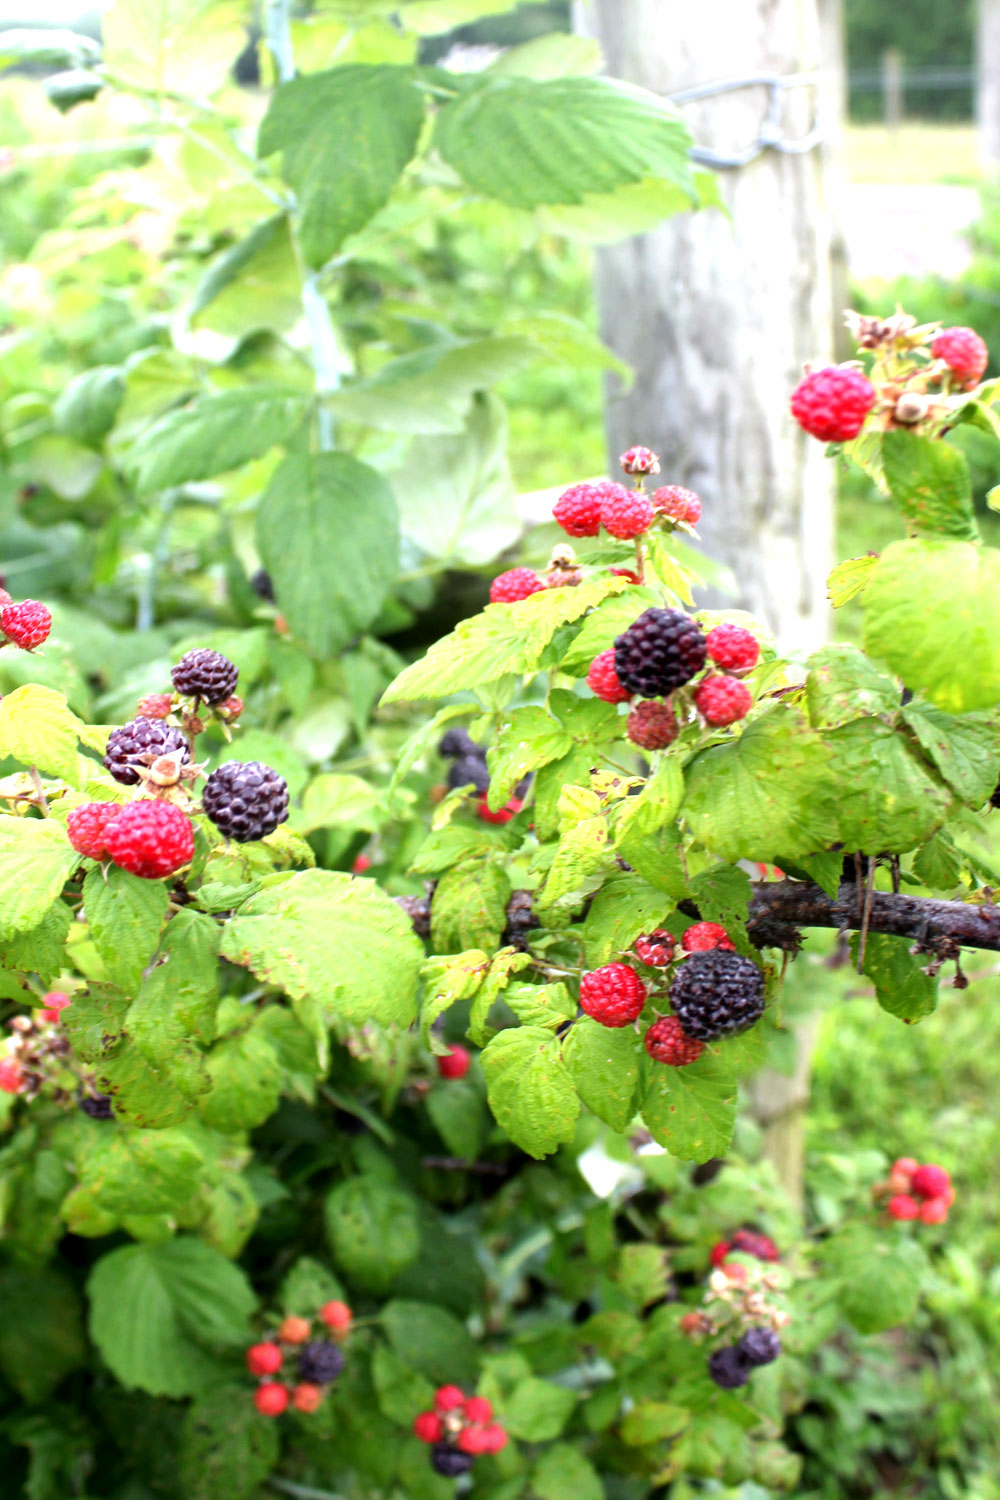 Bramble berries trellised and ready for harvest